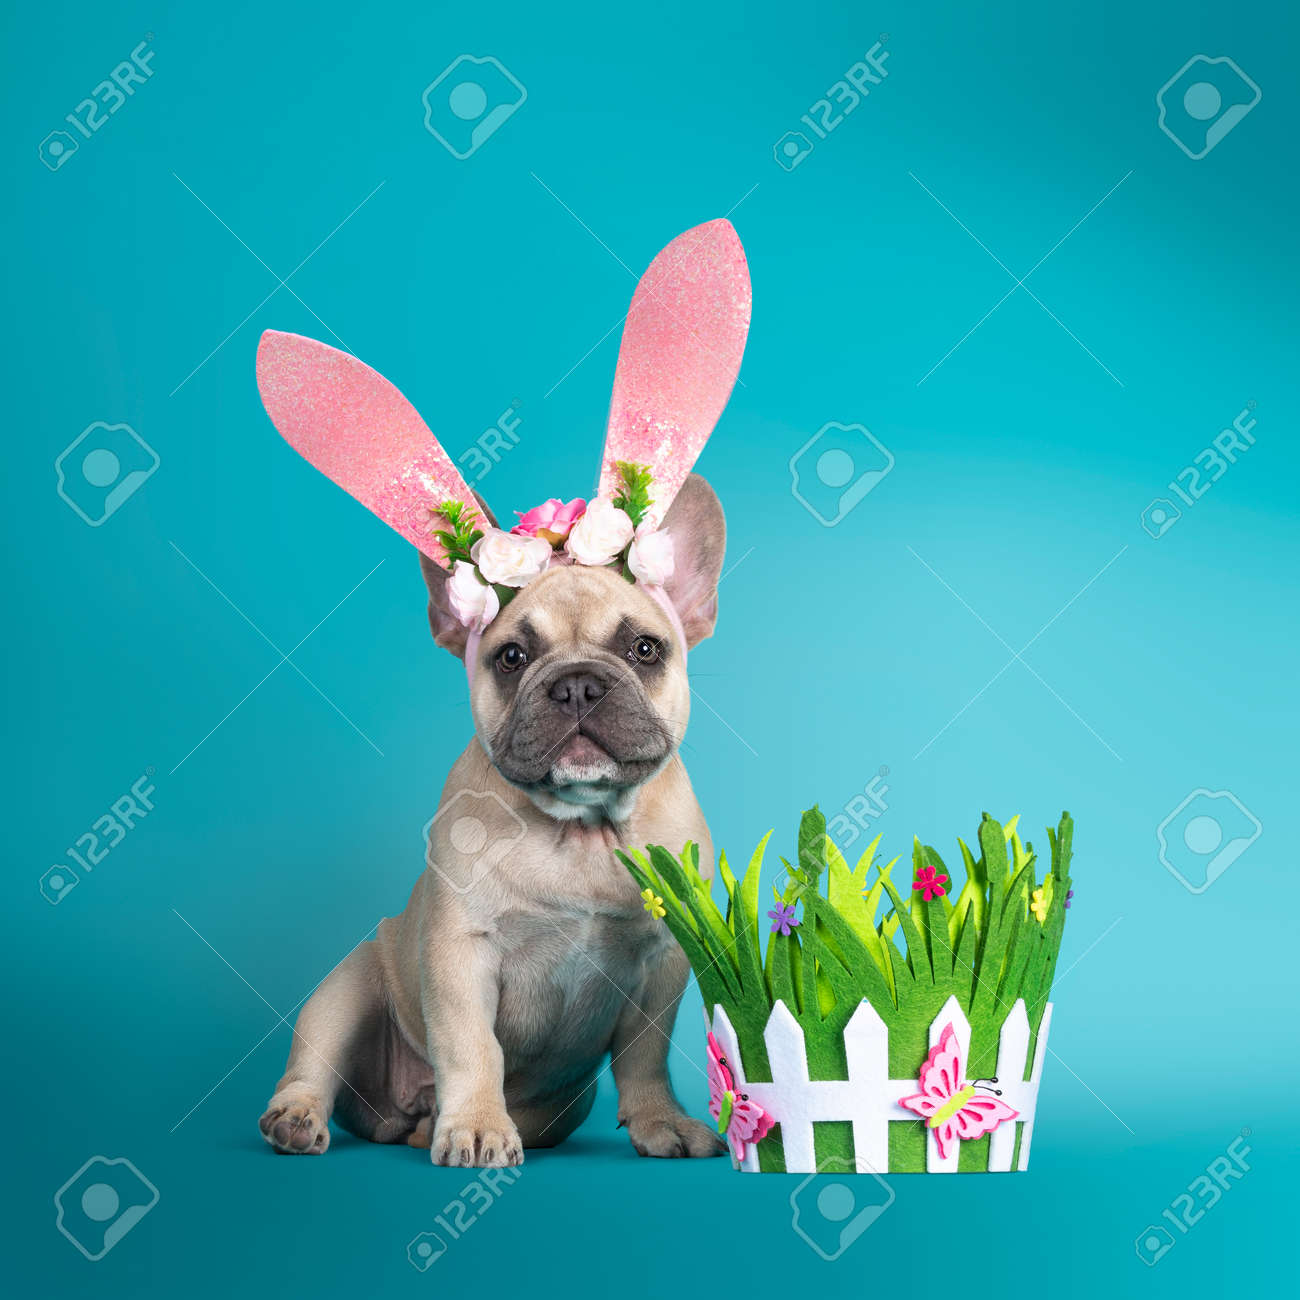 Adorable French Bulldog puppy, sitting up facing front wearing pink rabbit ear Easter hat. Looking towards camera. Isolated on turquoise background. - 173357236